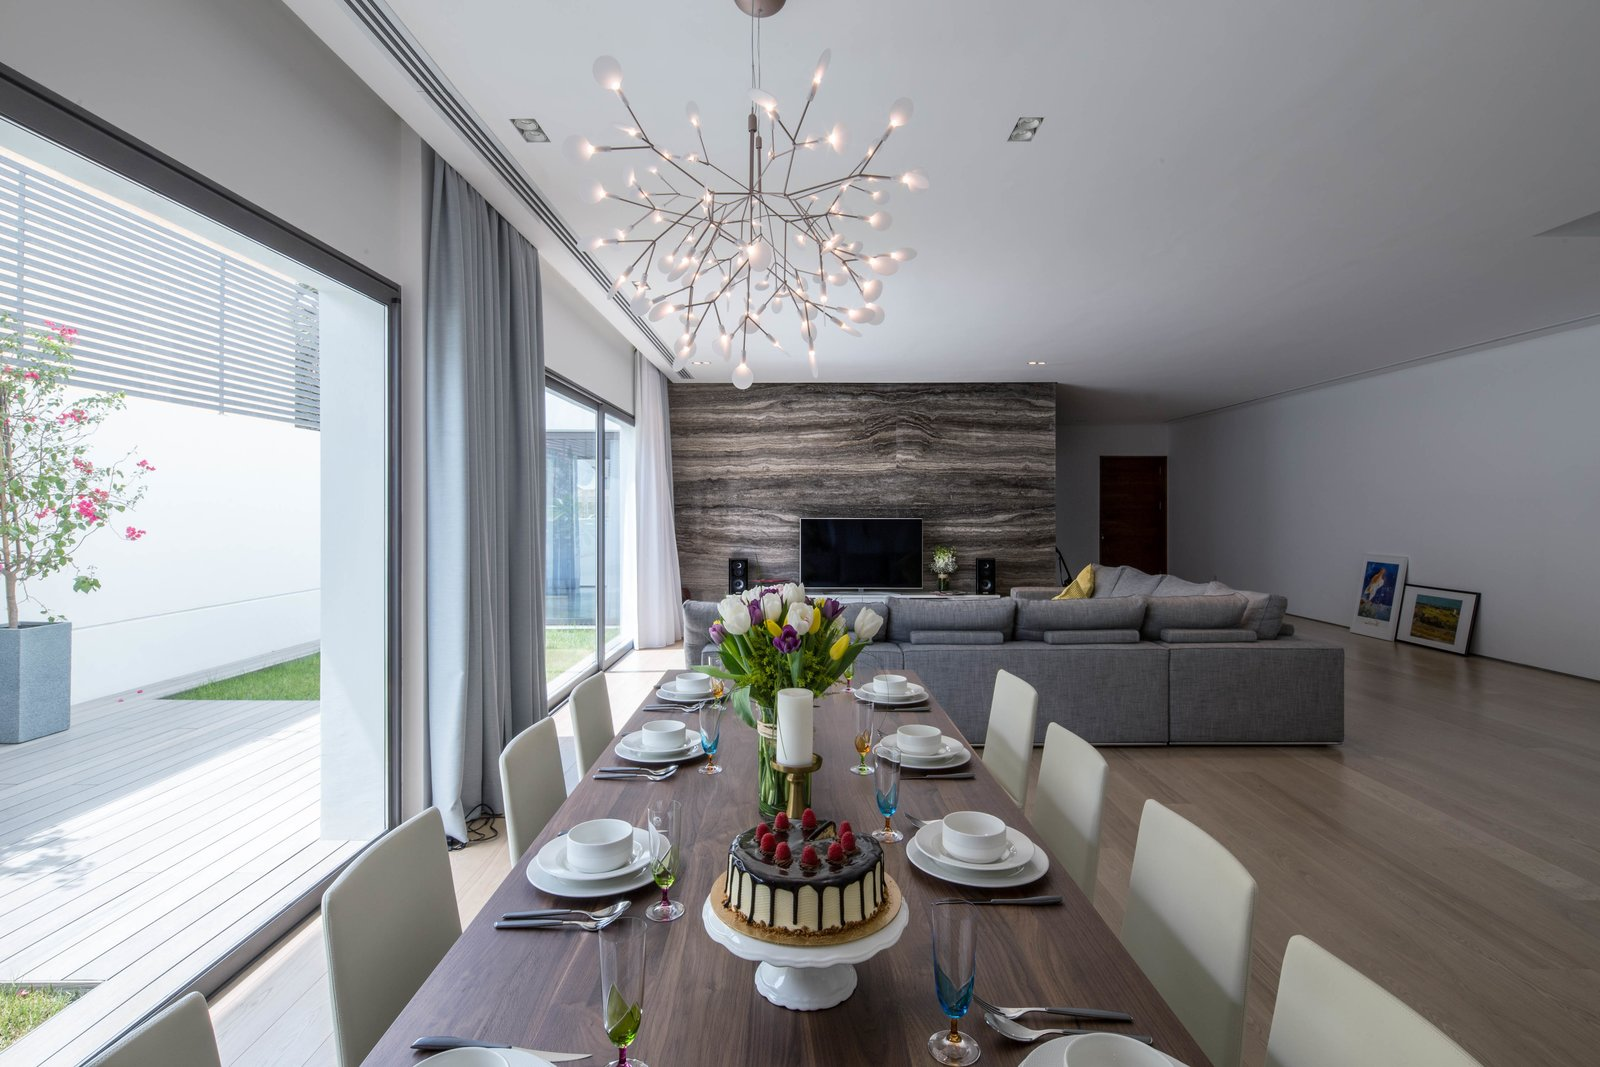 Dining Room, Chair, Table, Light Hardwood Floor, Lamps, Ceiling Lighting, Pendant Lighting, and Travertine Floor Living room and dining area looking over the private garden  A House in Yarmouk by Studio Toggle